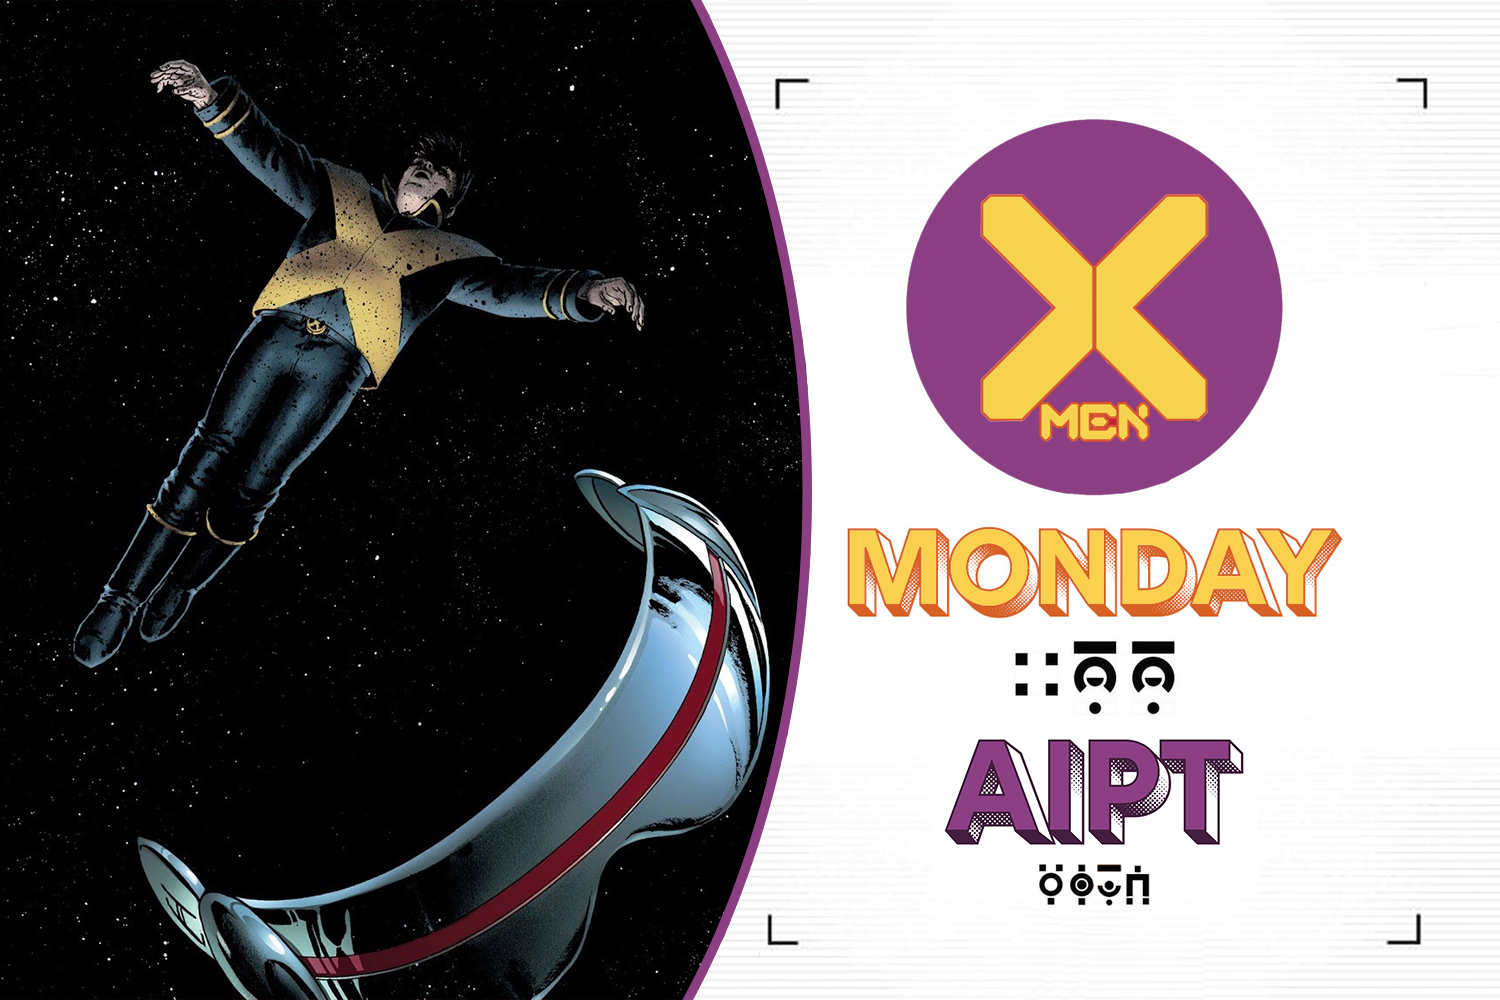 X-Men Monday #43 - X-Men in Spaceee!!!